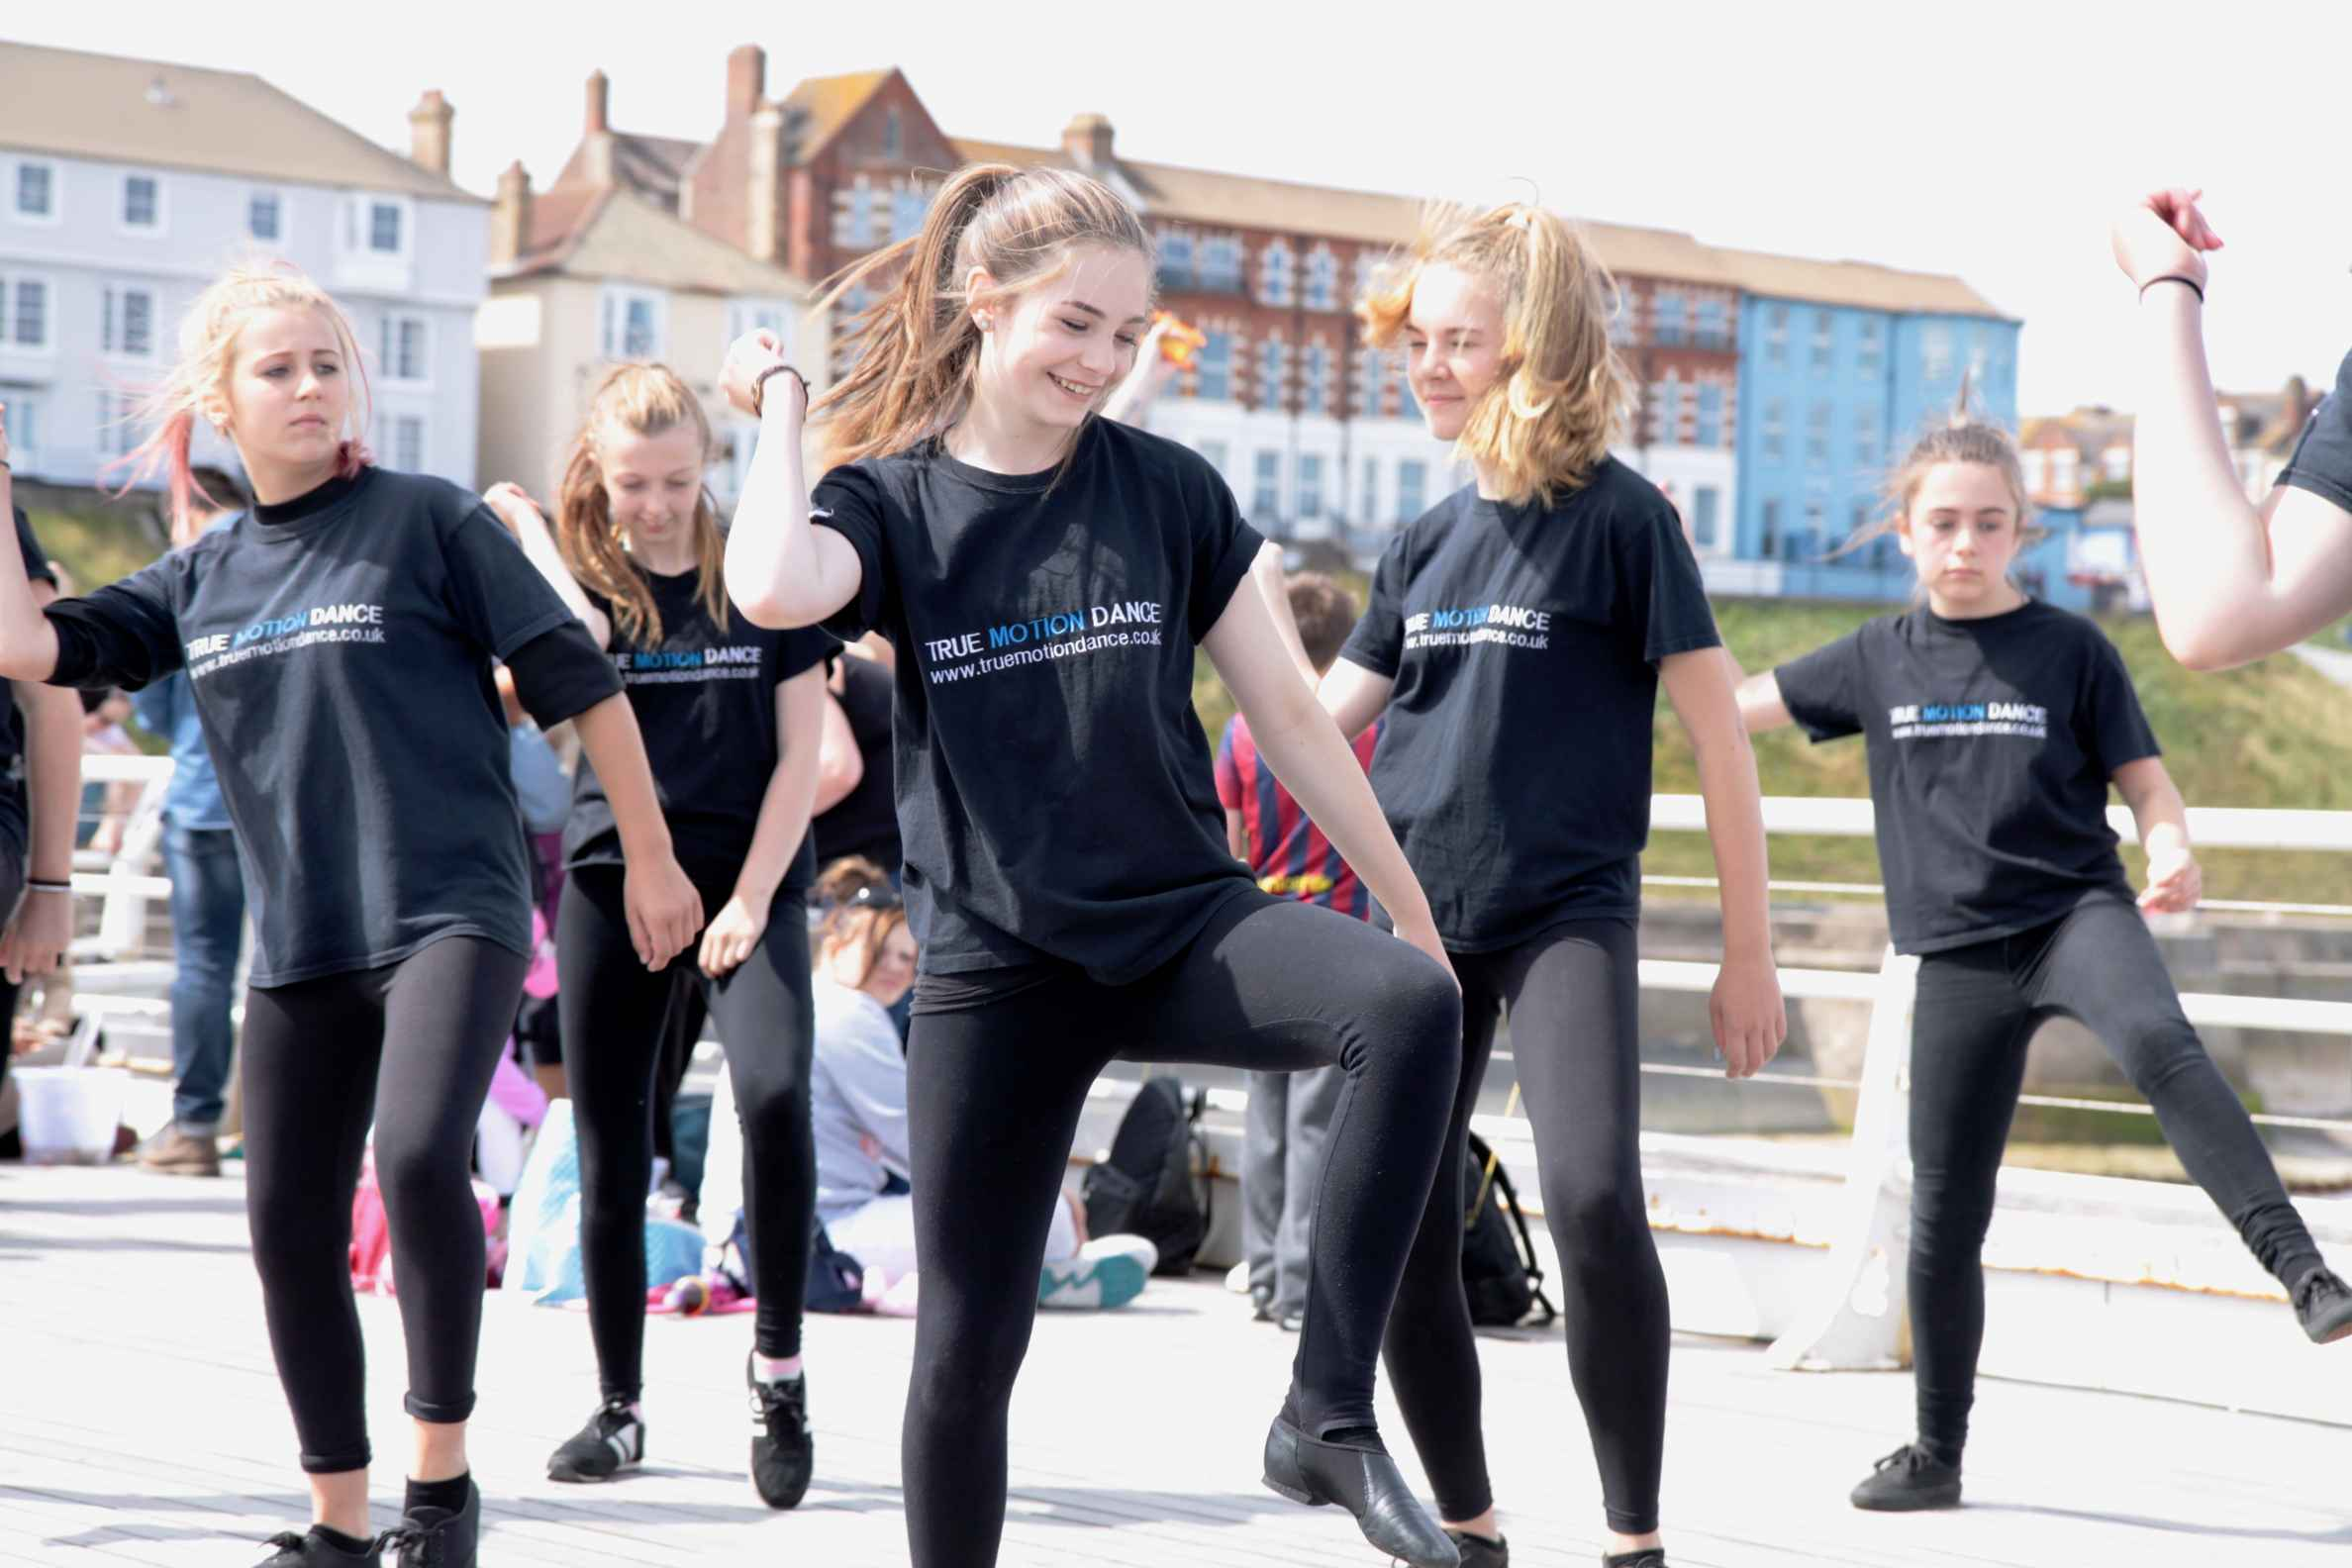 Girls dancing as part of holiday dance club